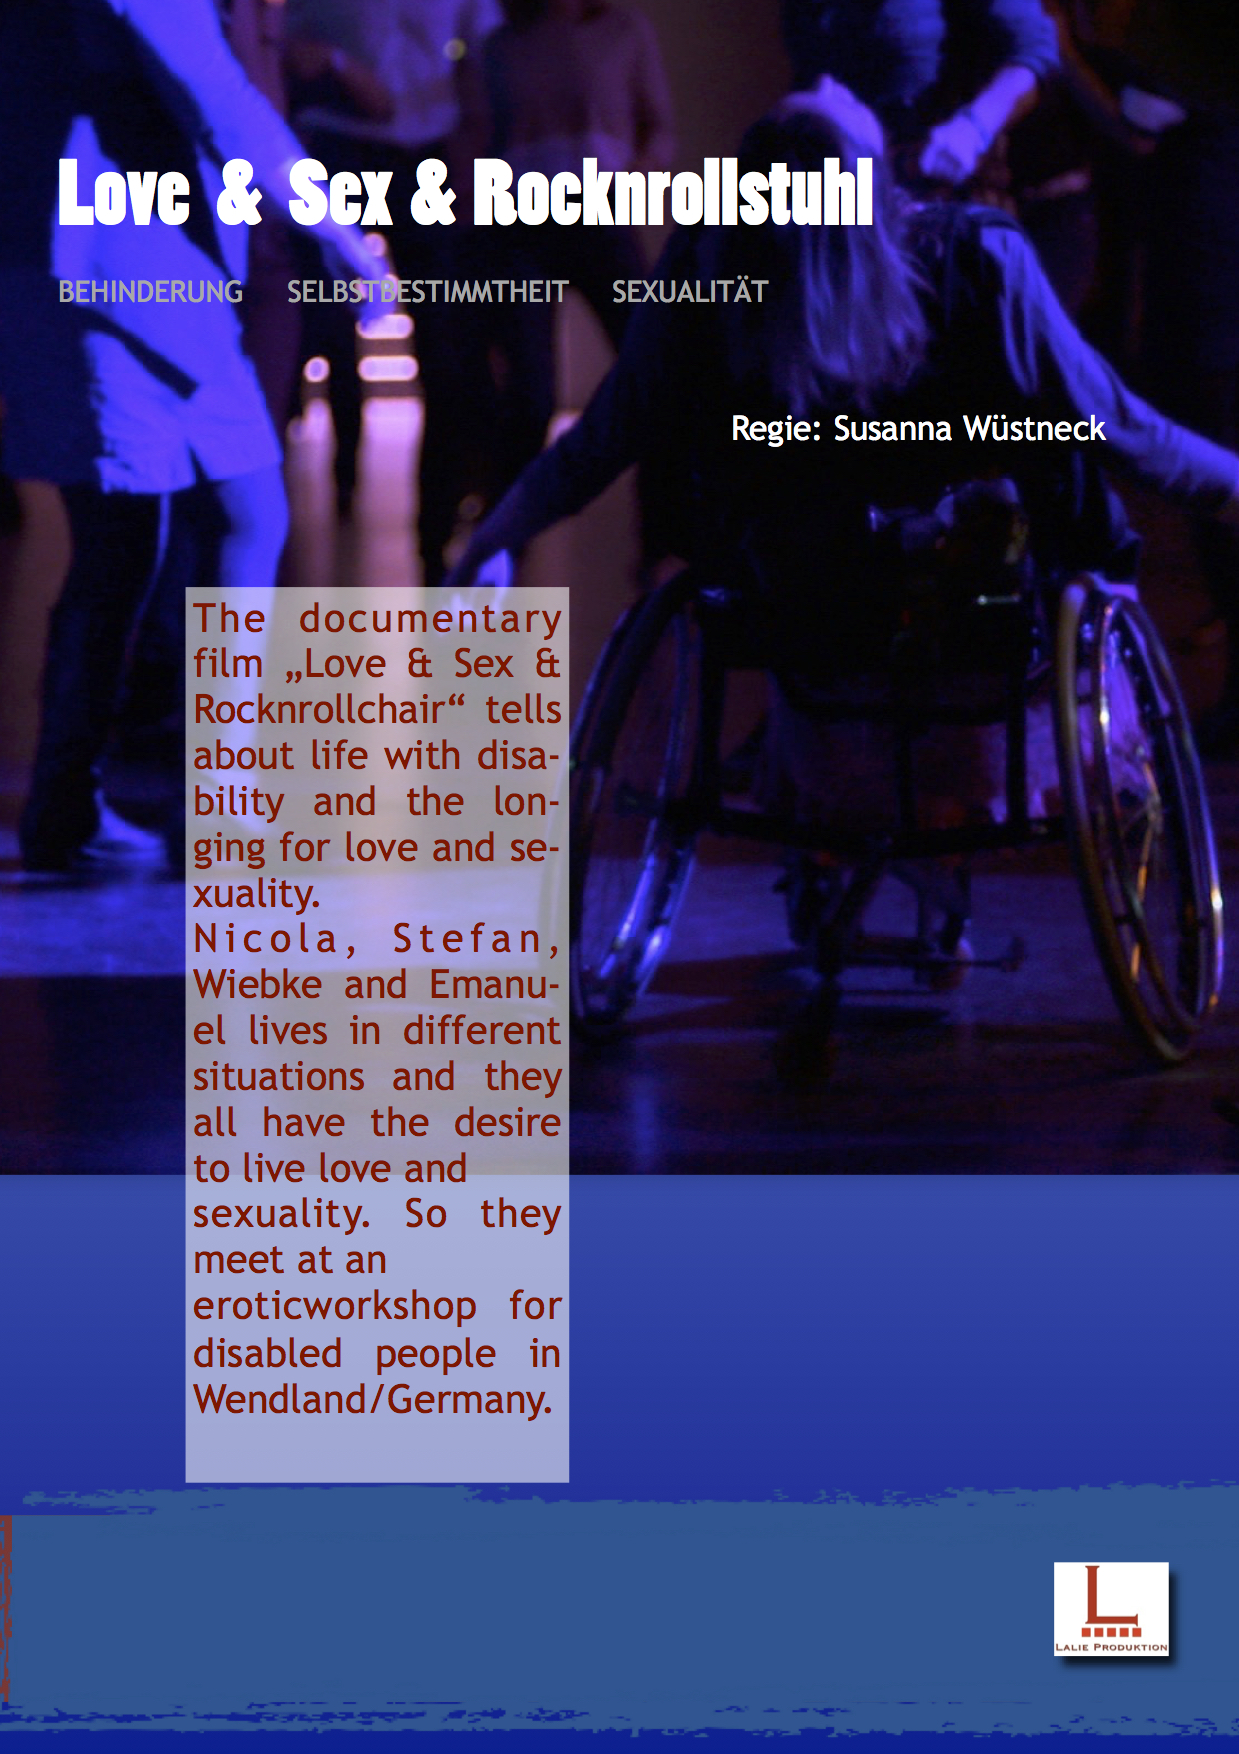 Disability, Self-Determination - Sexuality